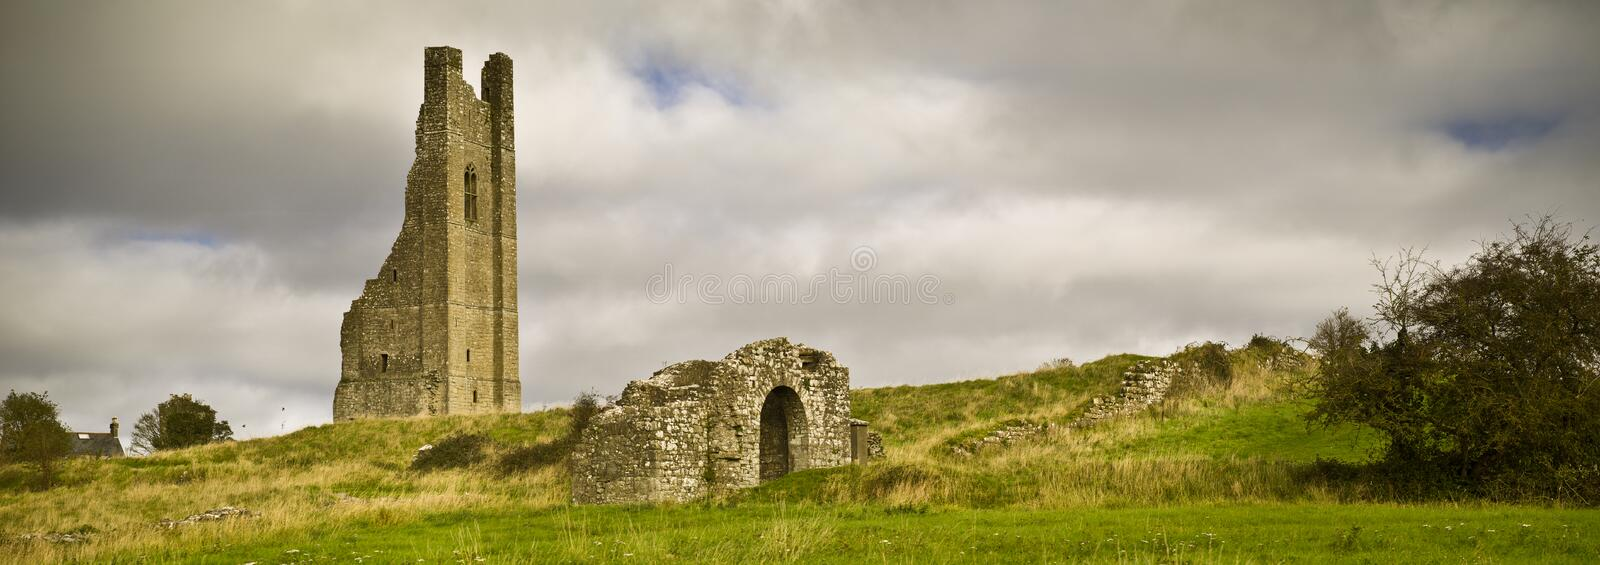 Ruins of The Yellow Steeple at St Mary`s Abbey, Trim, County Meath, Ireland. Panoramic view royalty free stock photos